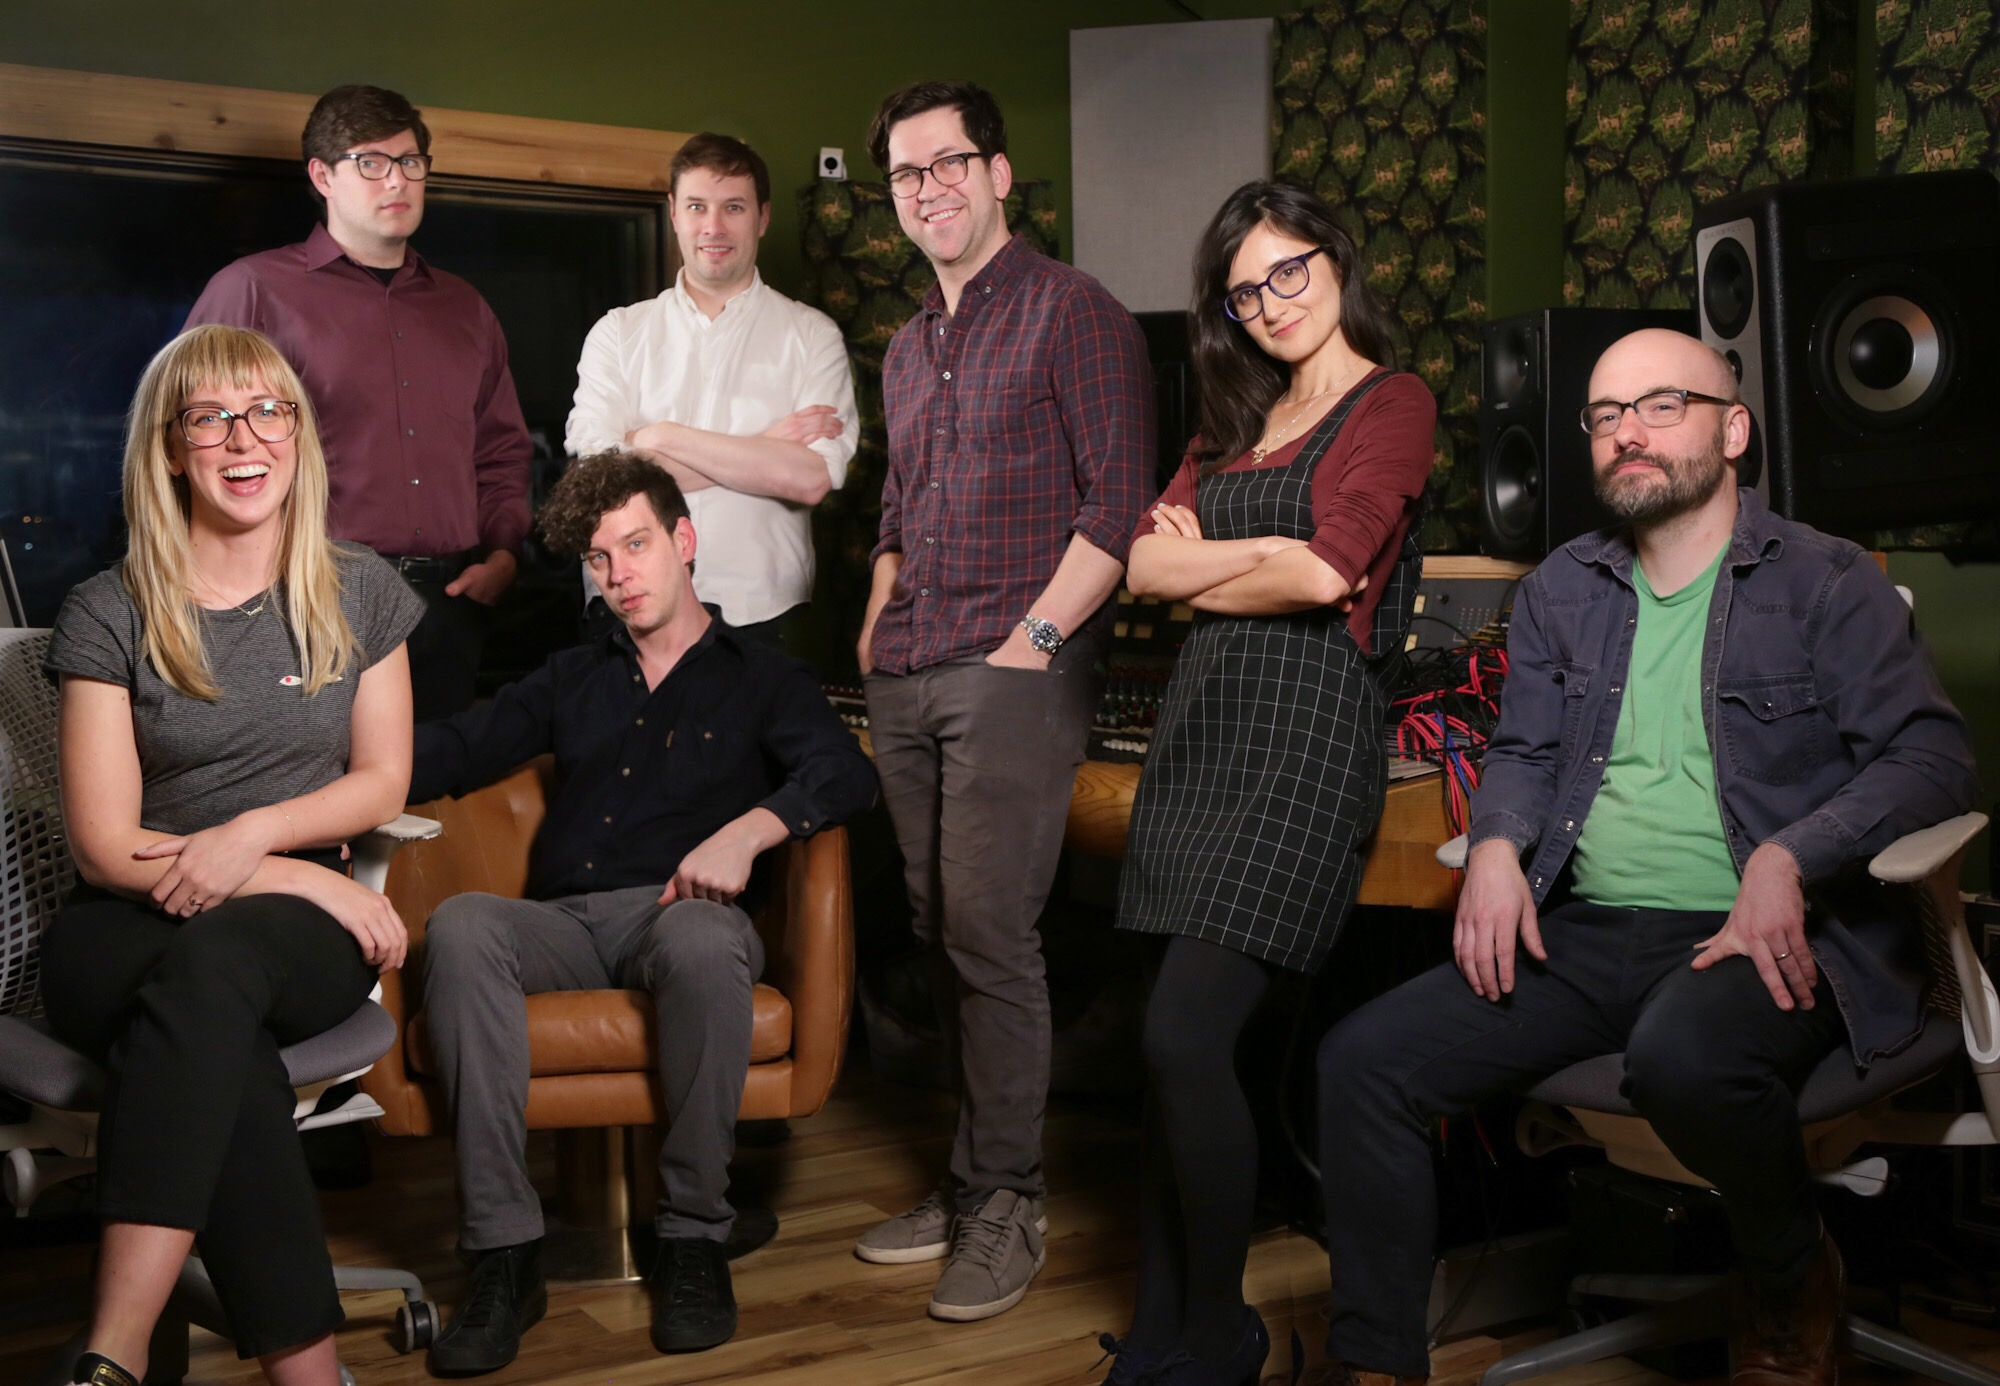 Mission to Zyxx   creators Allie Kokesh, Jeremy Bent, Shane O'Connell, Winston Noel, Alden Ford, Moujan Zolfaghari and Seth Lind.